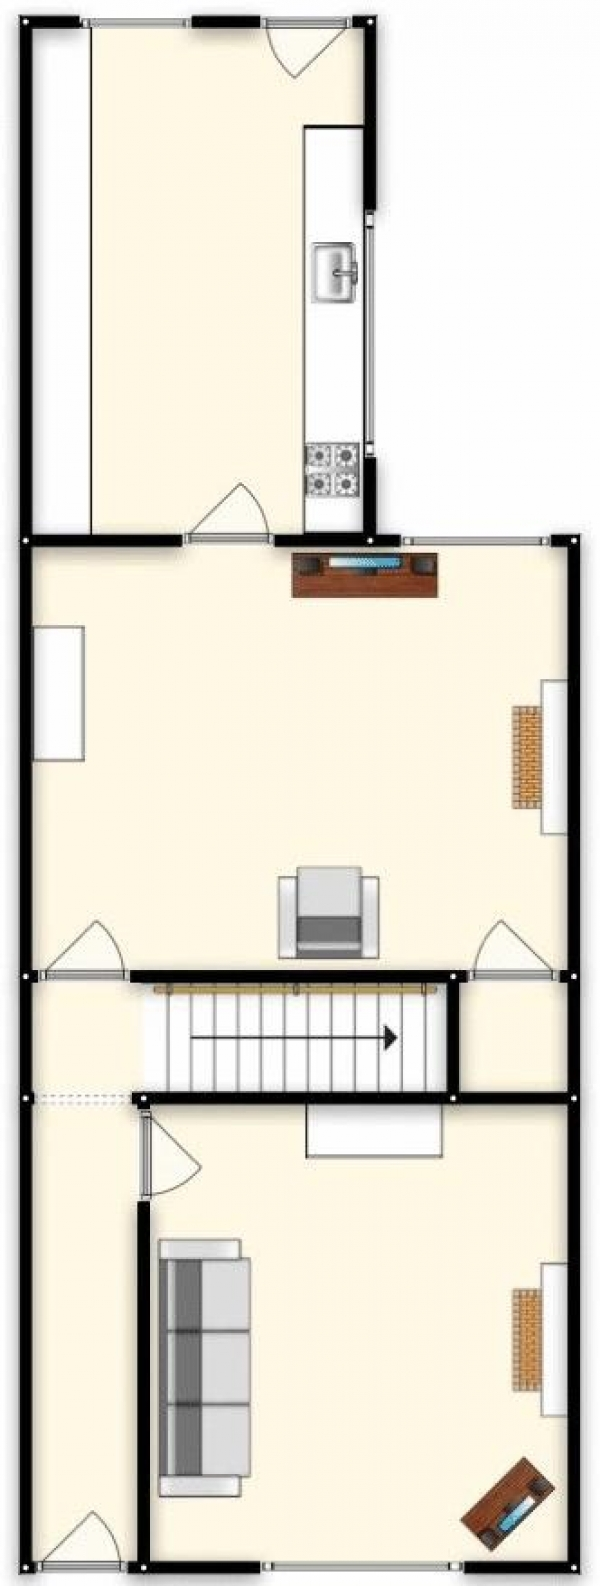 Floor Plan Image for 2 Bedroom Terraced House for Sale in Raymond Street, Manchester